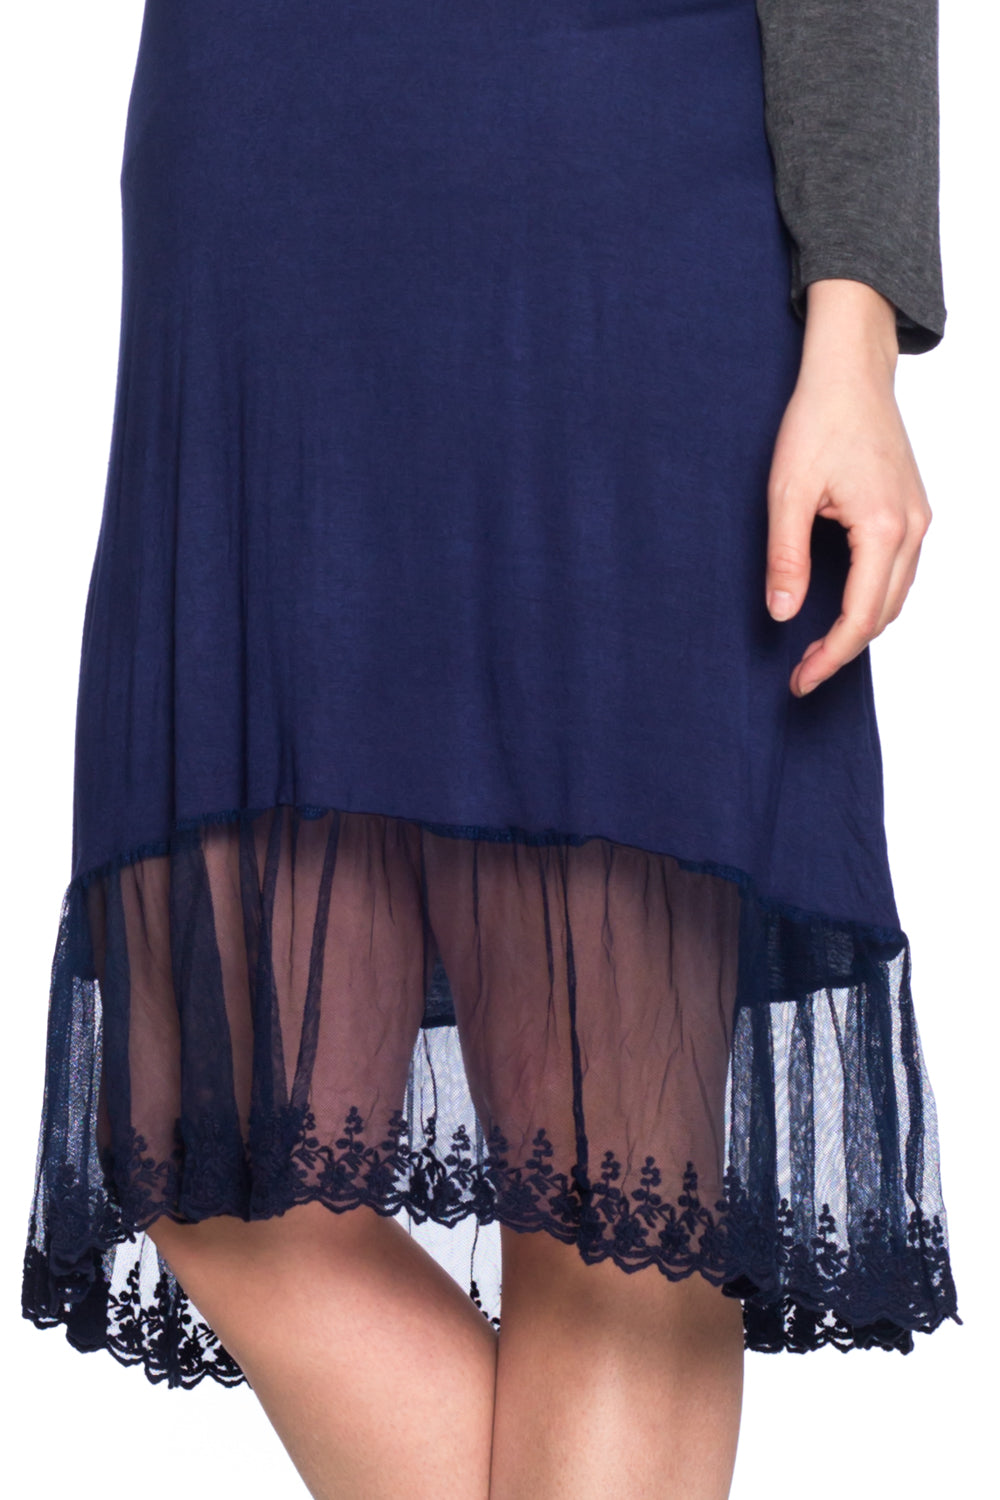 LS Dress with Lace Bottom Hem